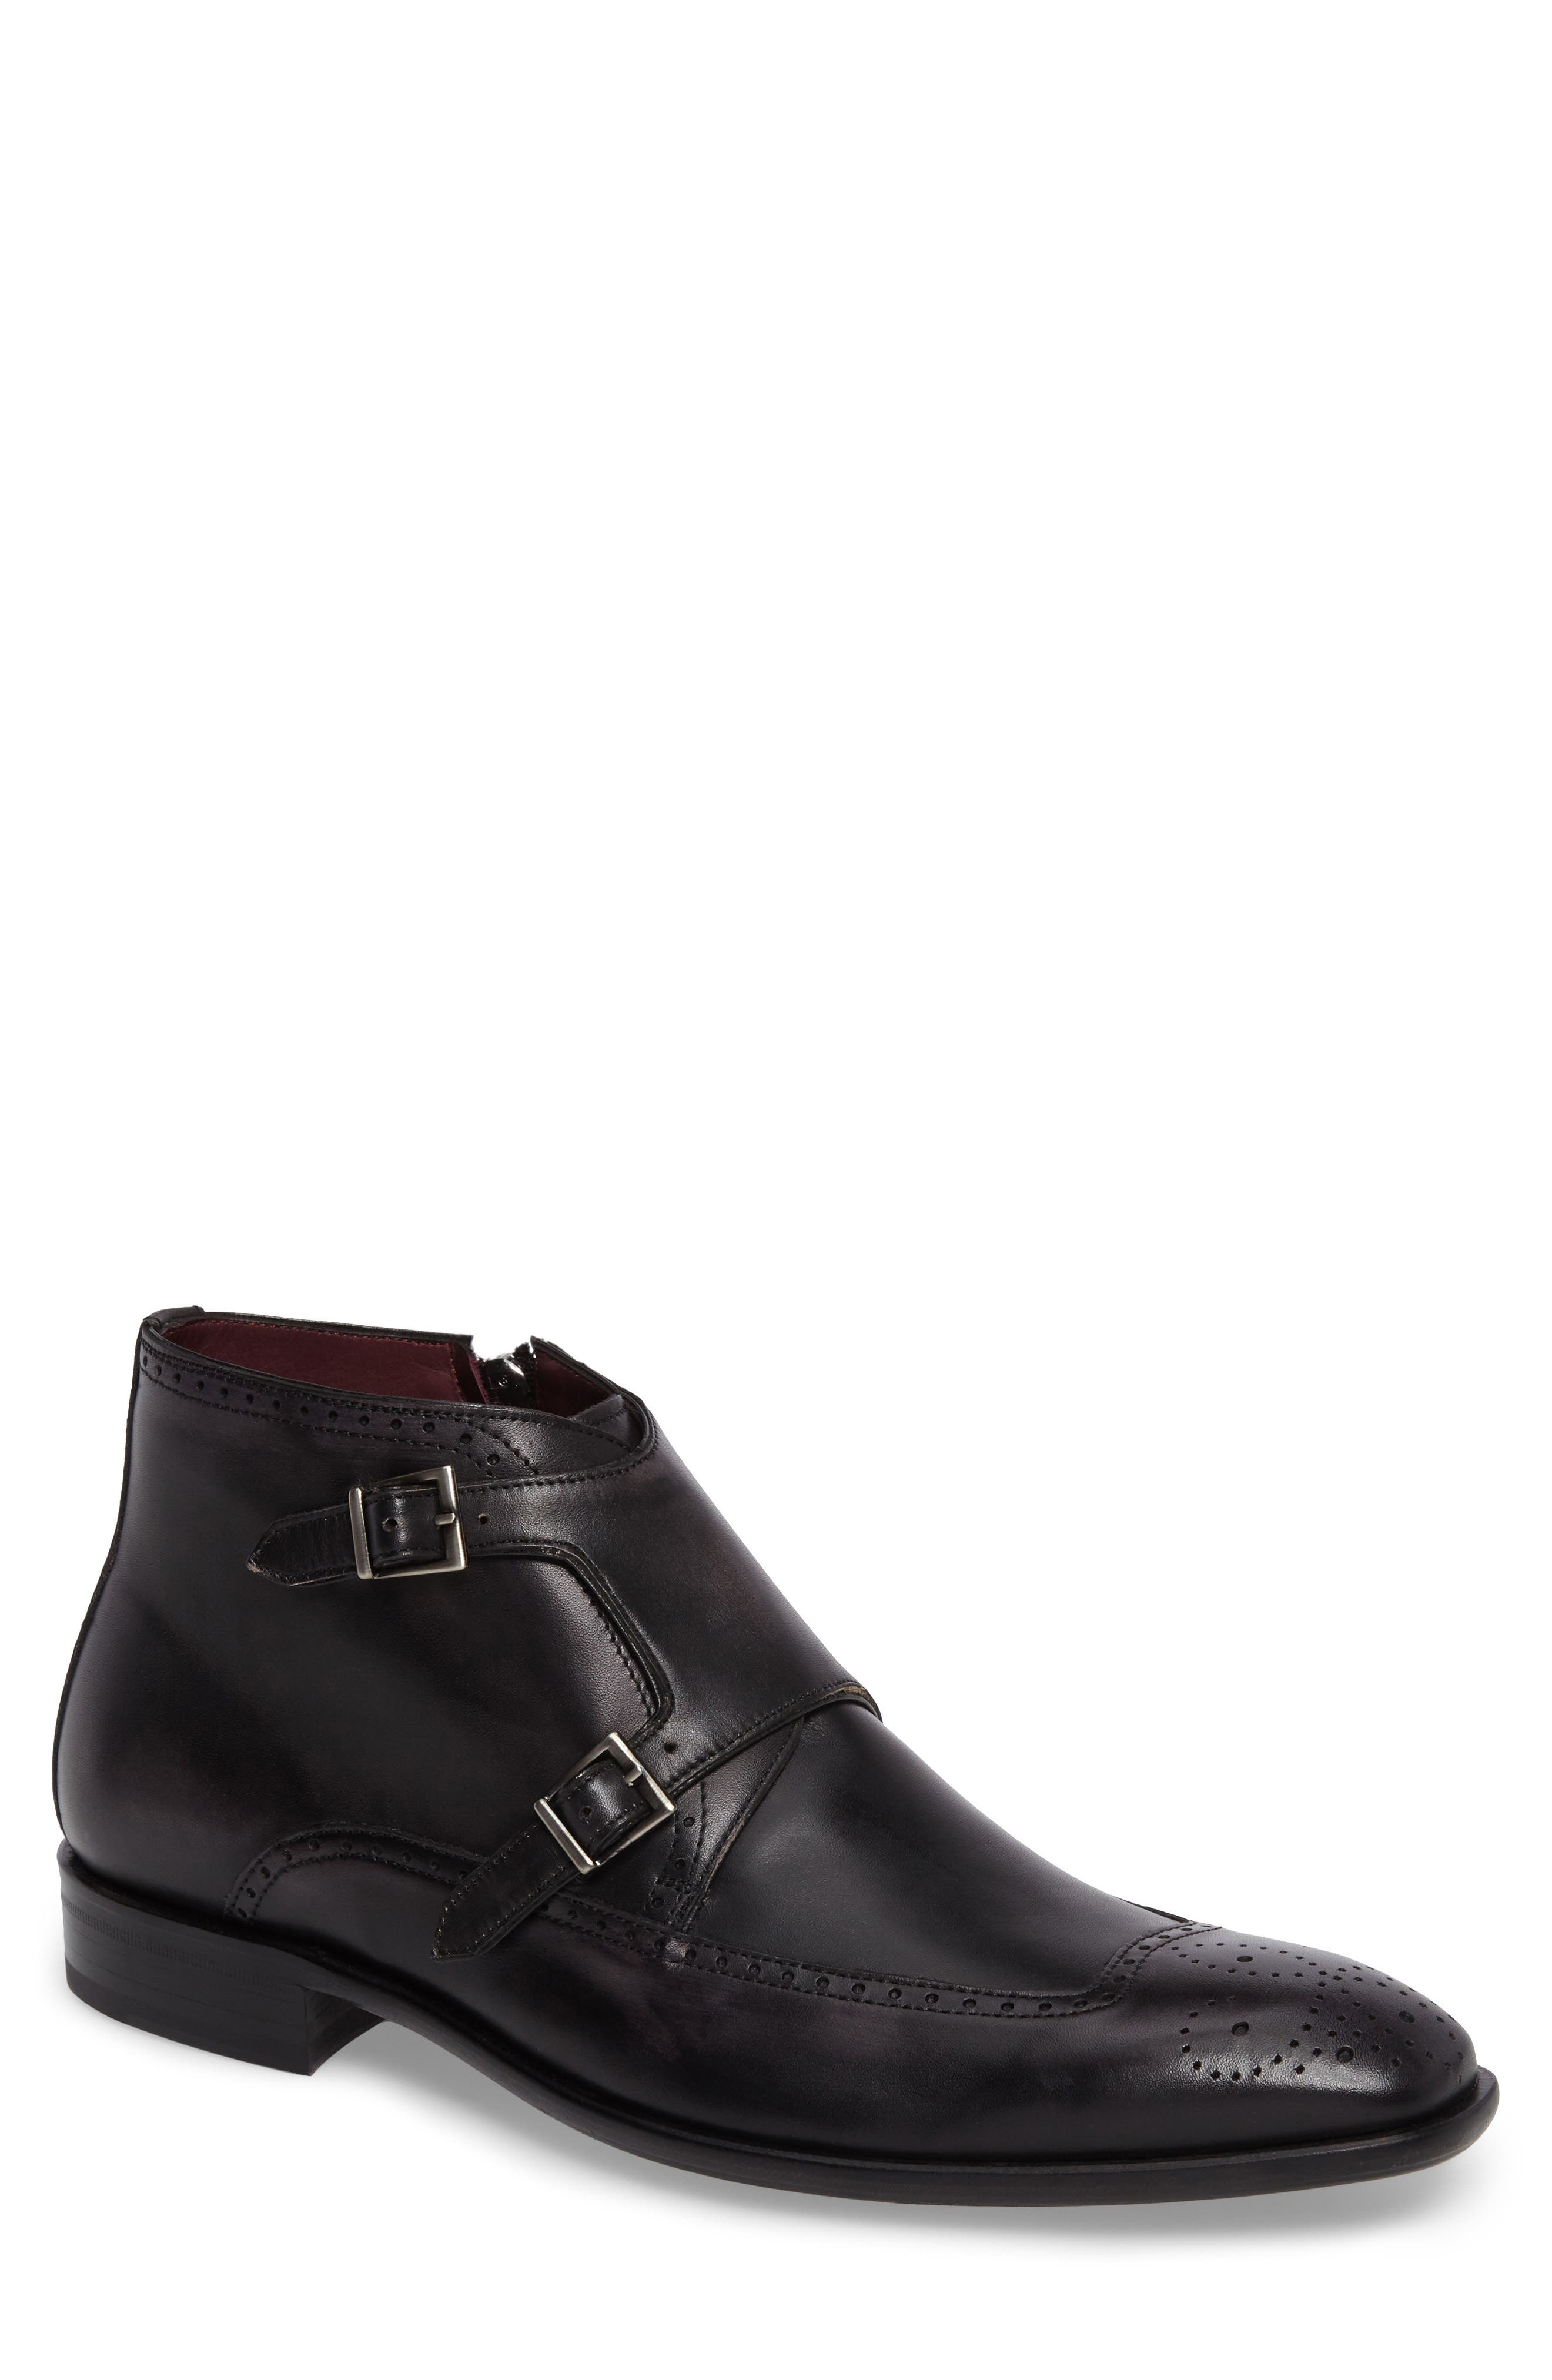 MEZLAN Taberna Double Monk Strap Boot in Graphite Leather